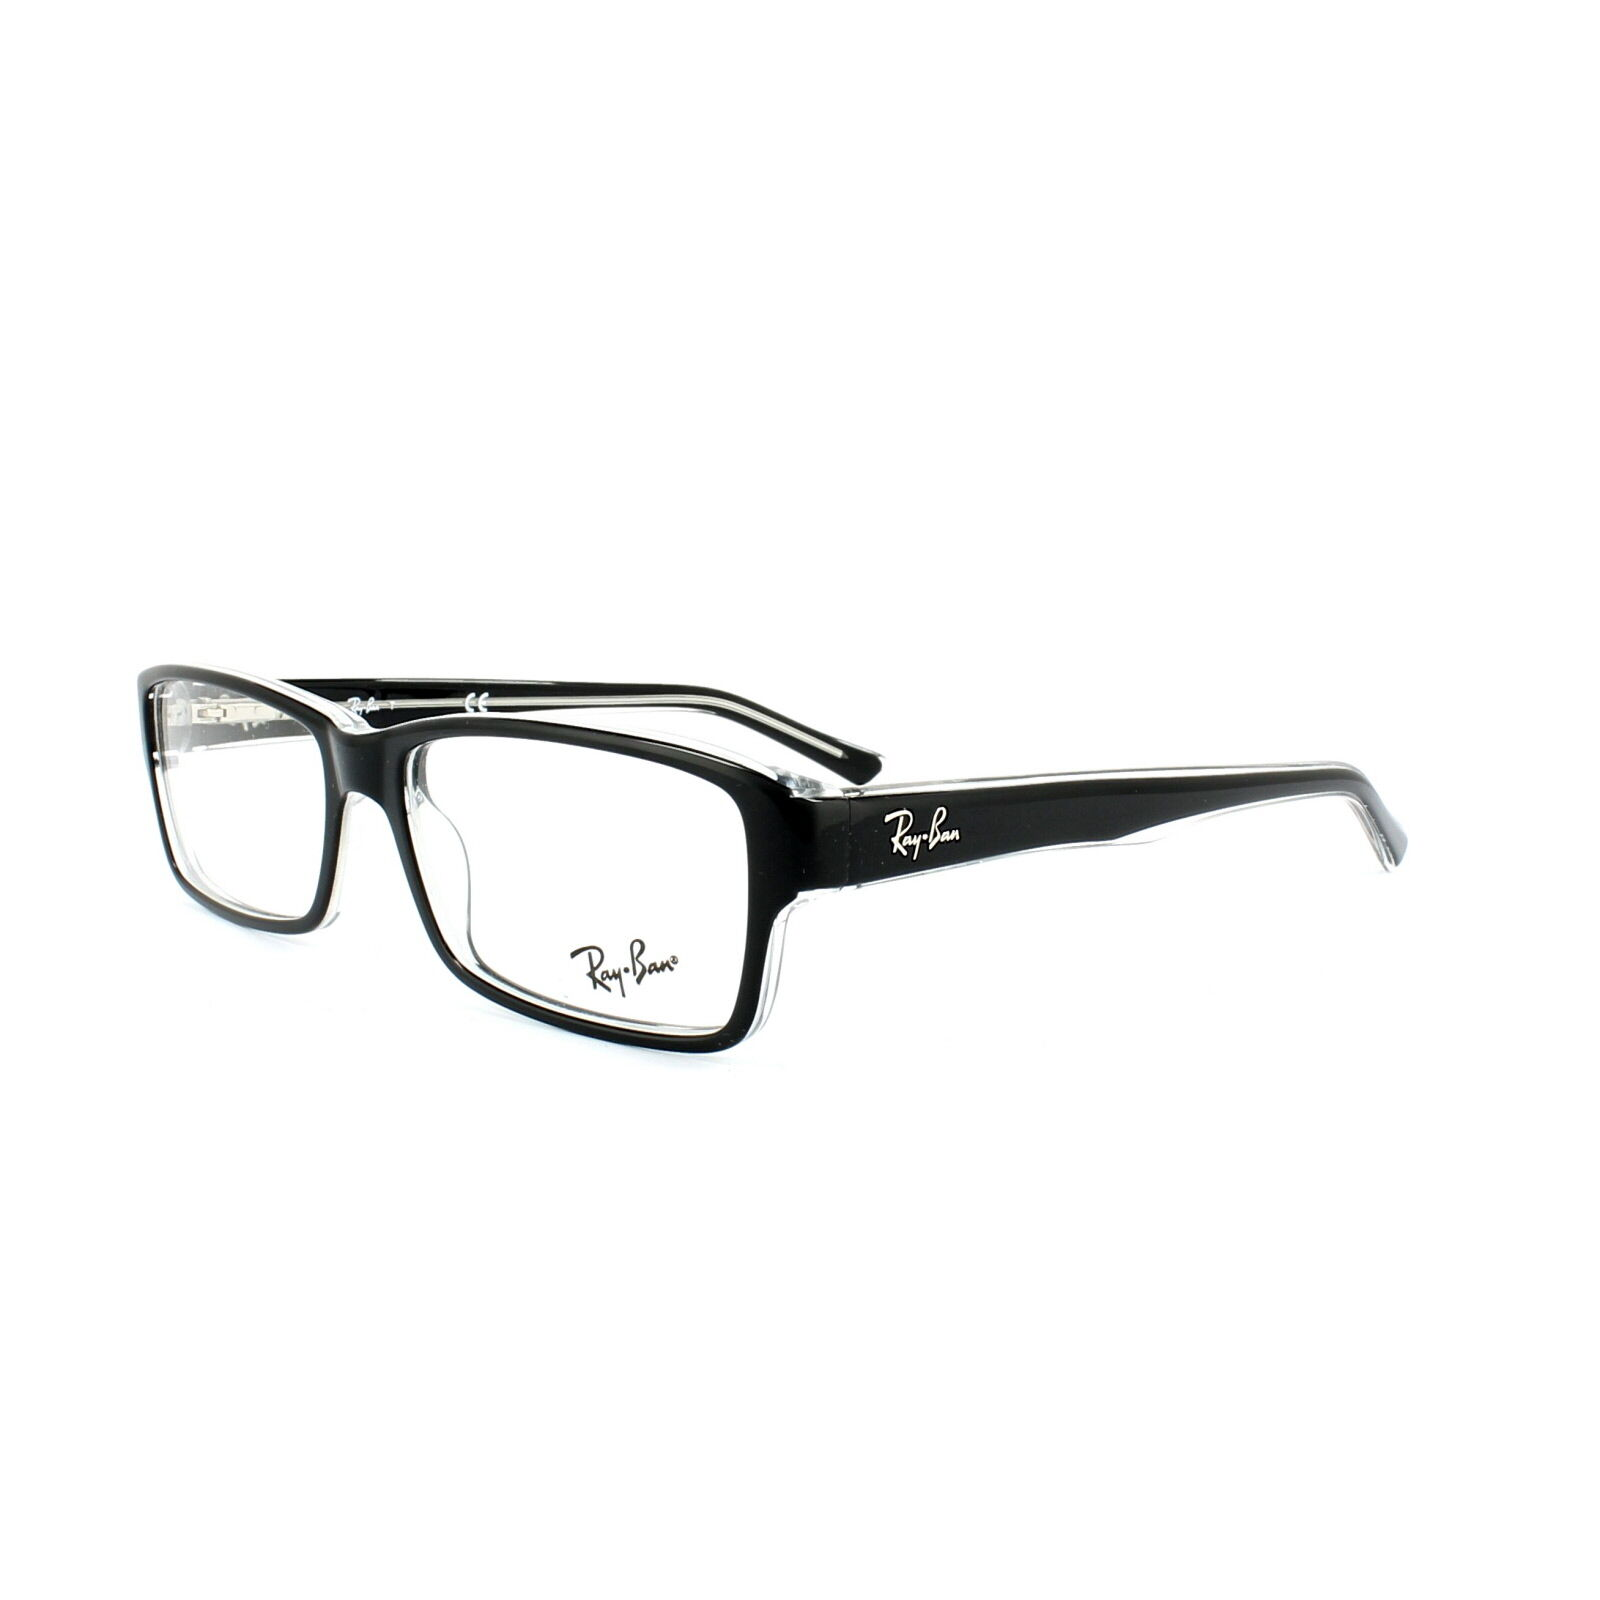 Ray Ban Glasses Frames Ireland : Ray-Ban Glasses Frames 5169 2034 Top Black On Transparent ...